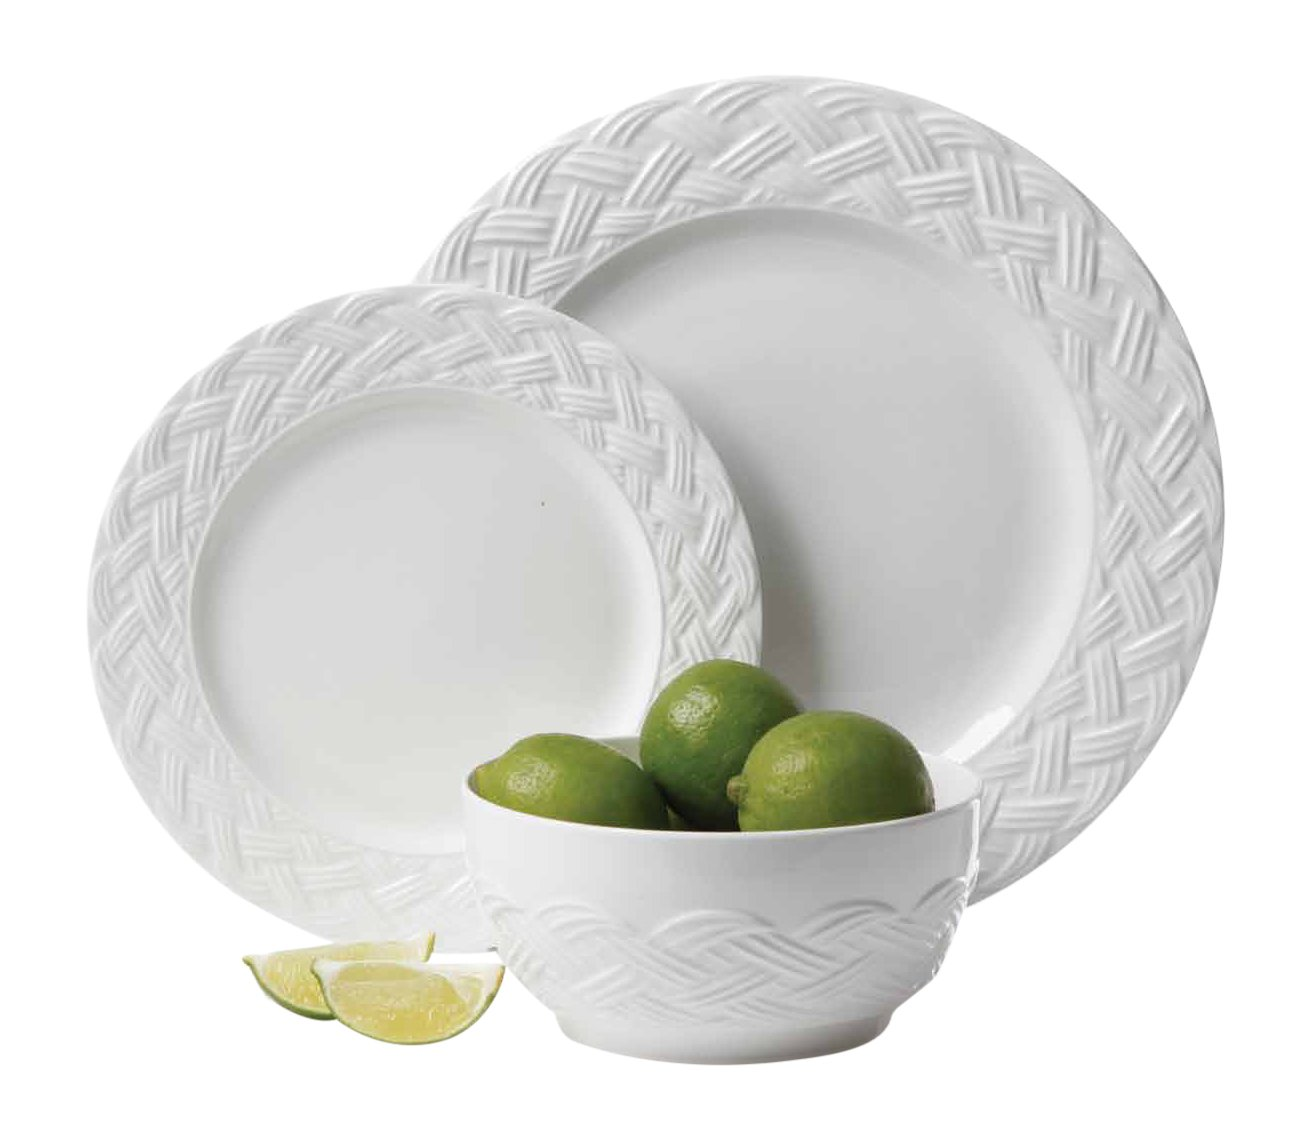 Amazon.com Gibson Home 12 Piece Elm Shire Dinnerware Set White Kitchen u0026 Dining  sc 1 st  Amazon.com & Amazon.com: Gibson Home 12 Piece Elm Shire Dinnerware Set White ...